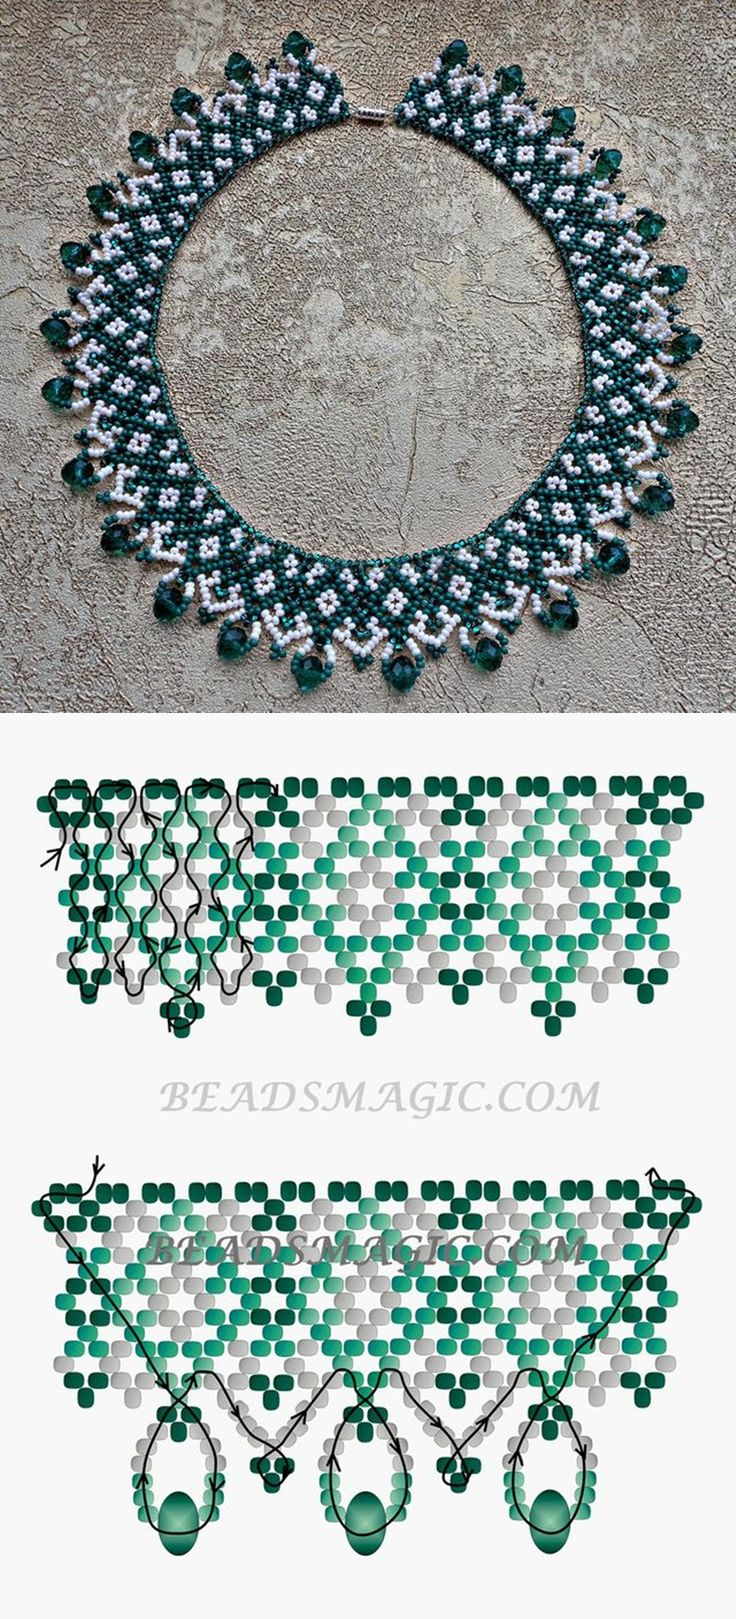 Free pattern for beaded necklace Emily | Beads Magic | Bloglovin' seed beads 11/0 rondelle crystal beads 6 mm